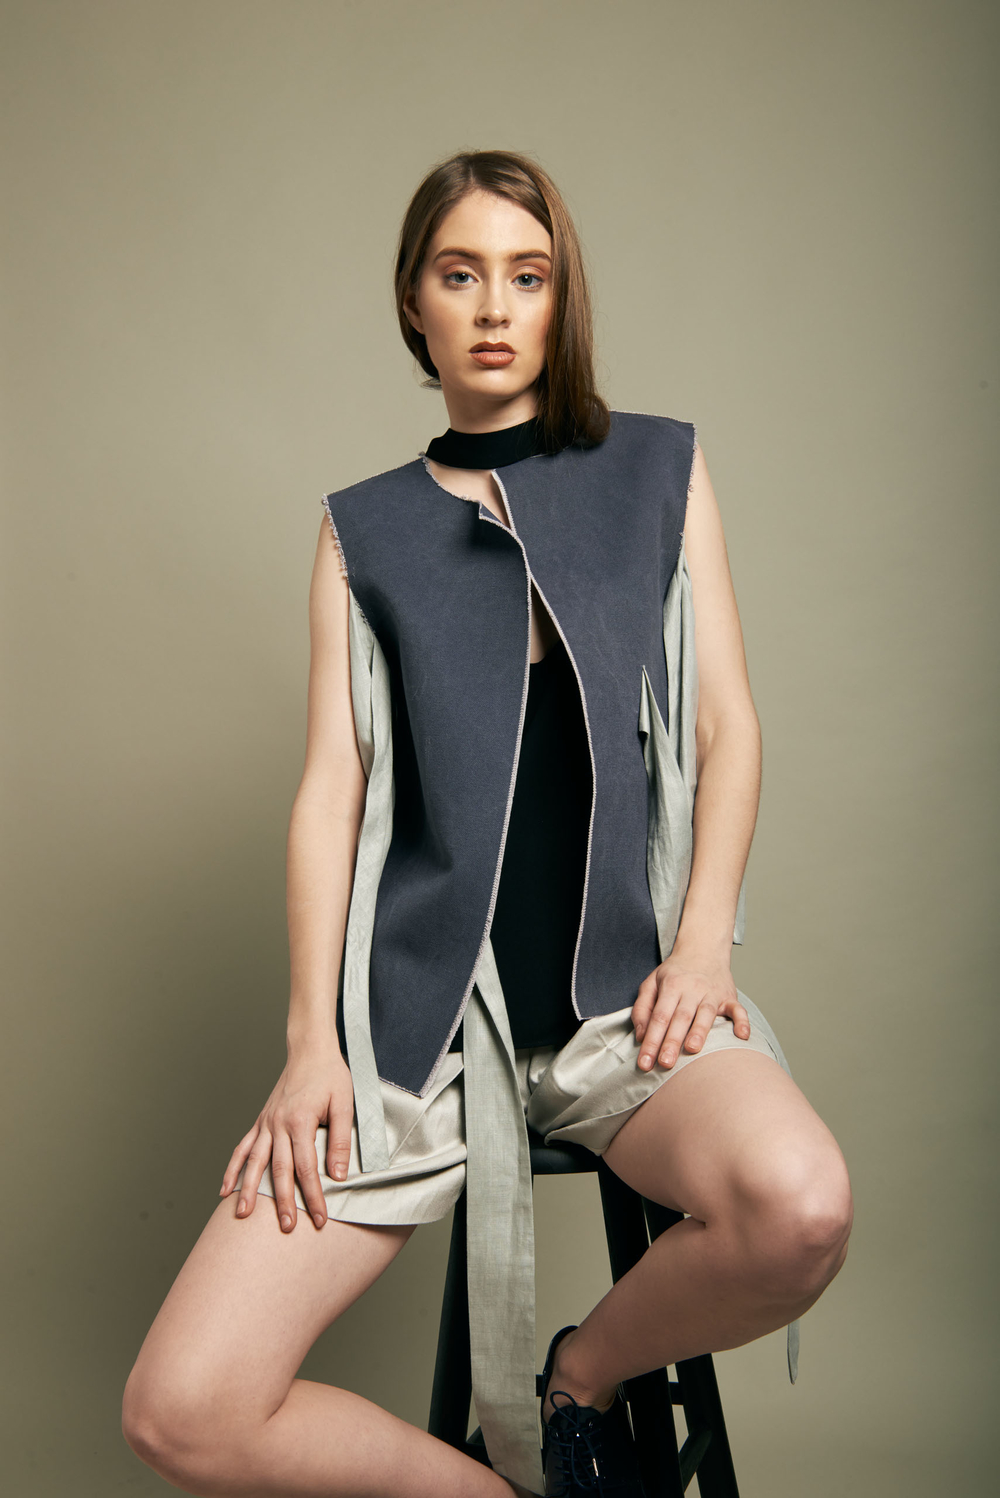 Denimvest_pamplemousse_editorial.jpg